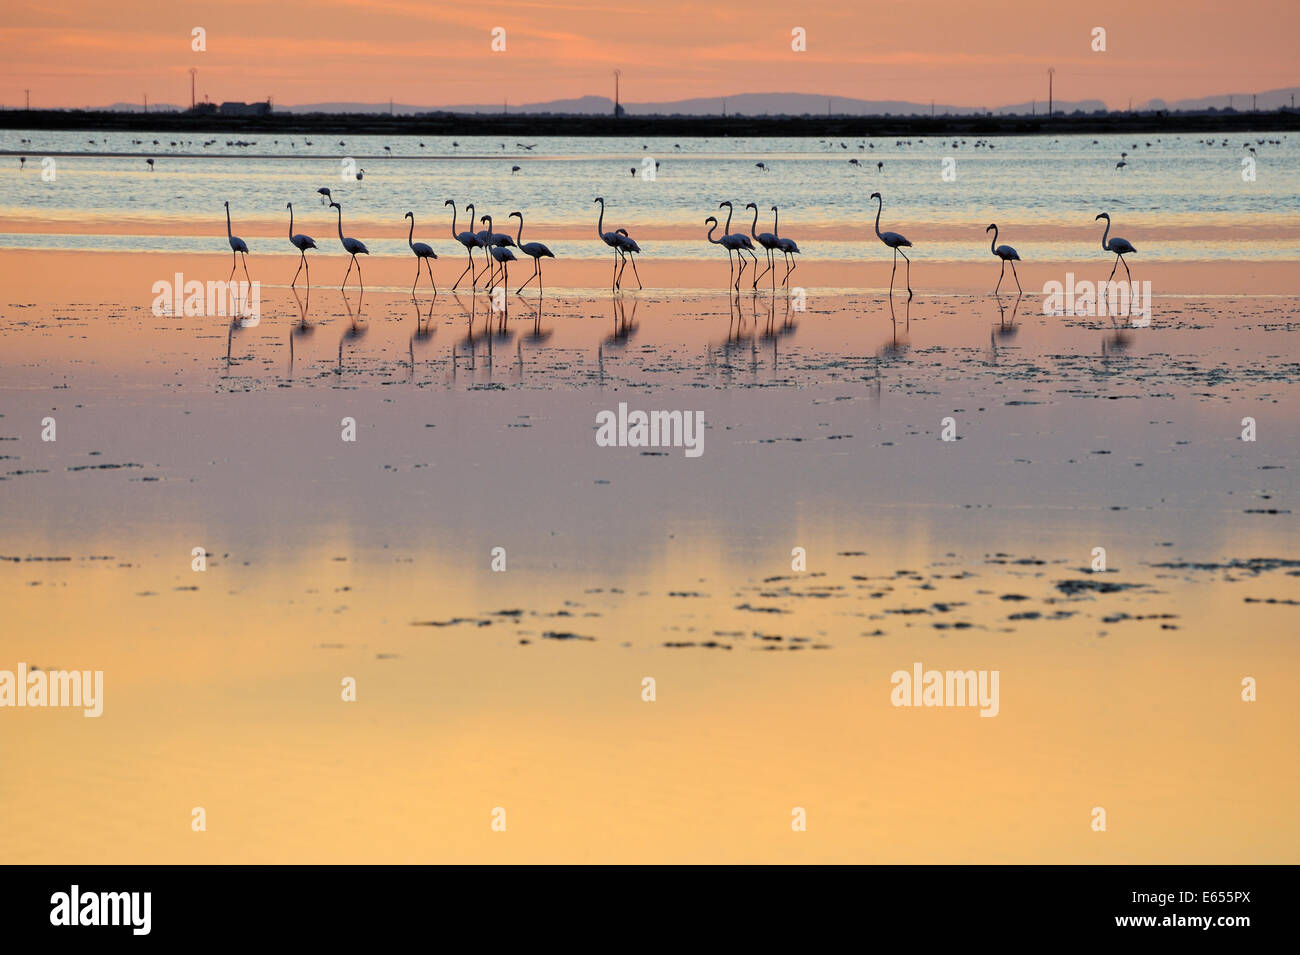 Greater flamingos (Phoenicopterus ruber) in a lake at sunset, Camargue, France, Europe - Stock Image